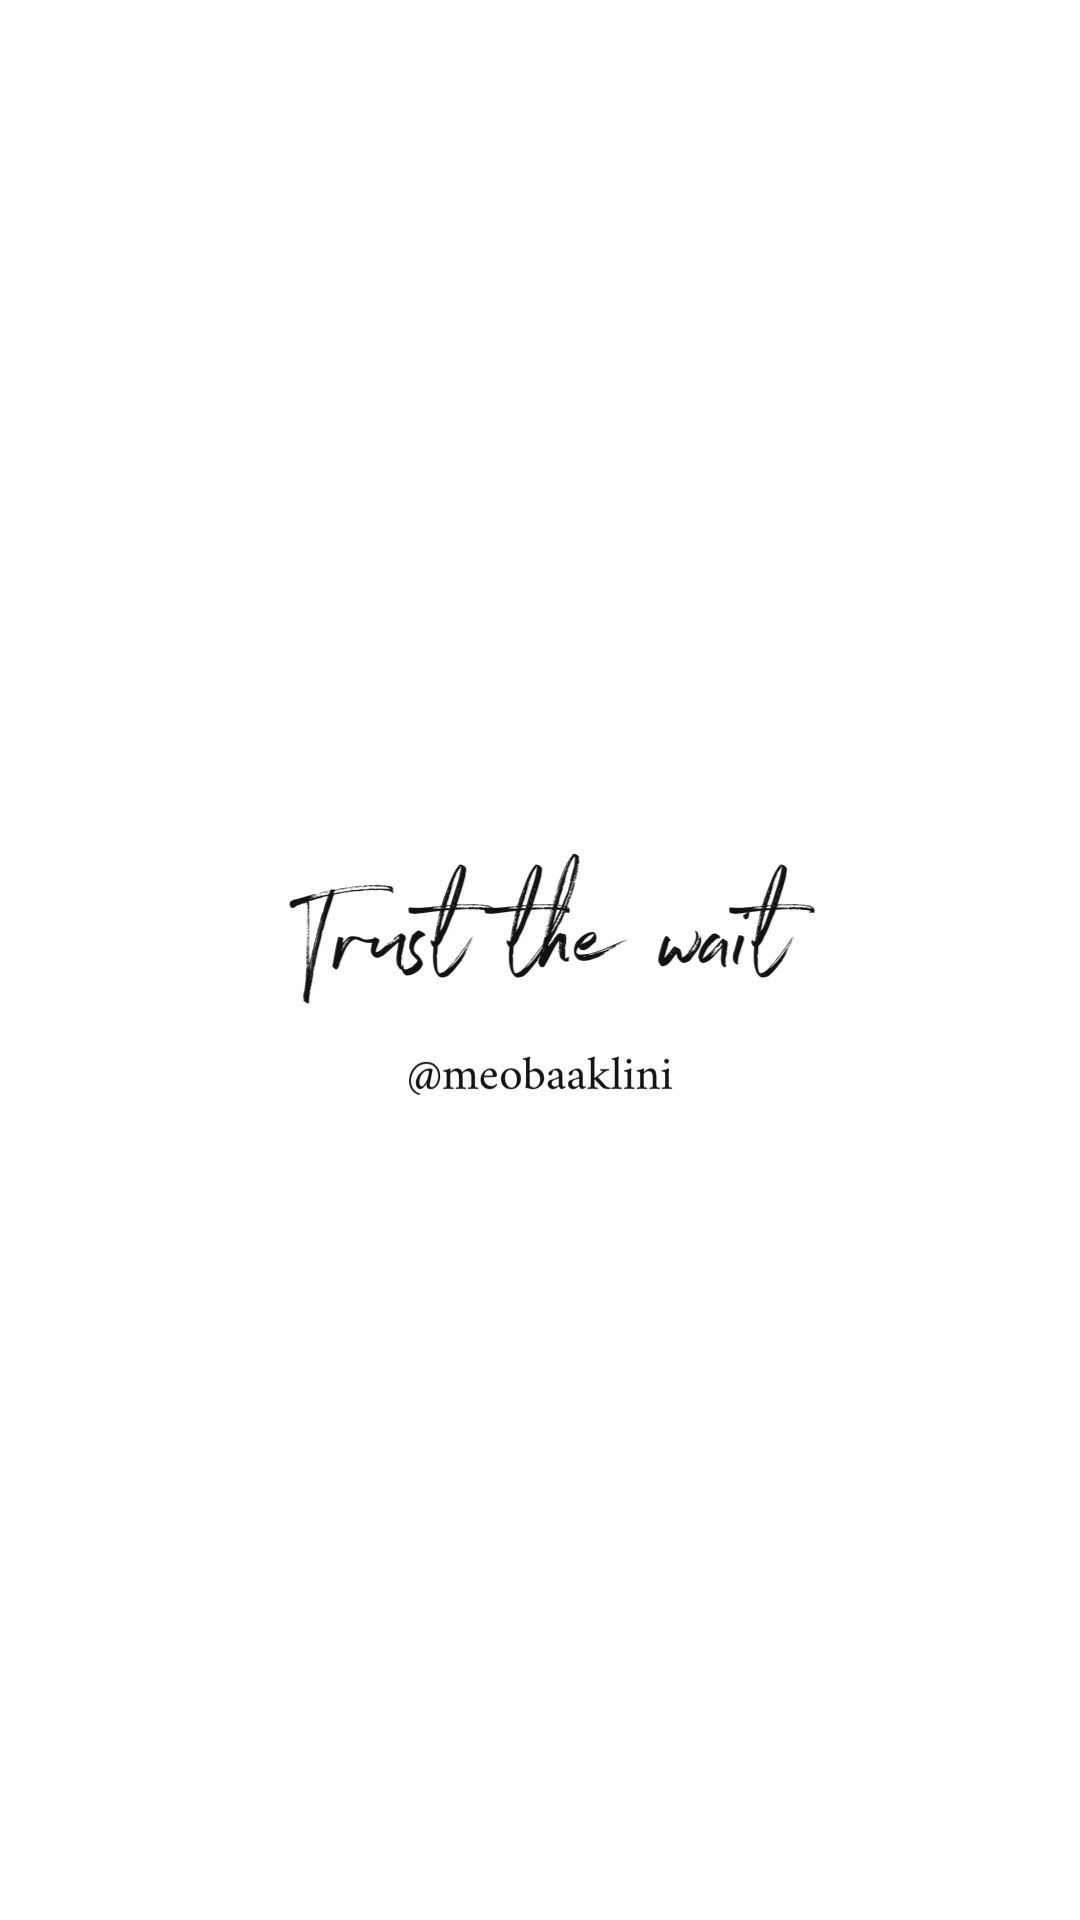 Trust the wait quote  White background quotes, Waiting quotes, Quotes